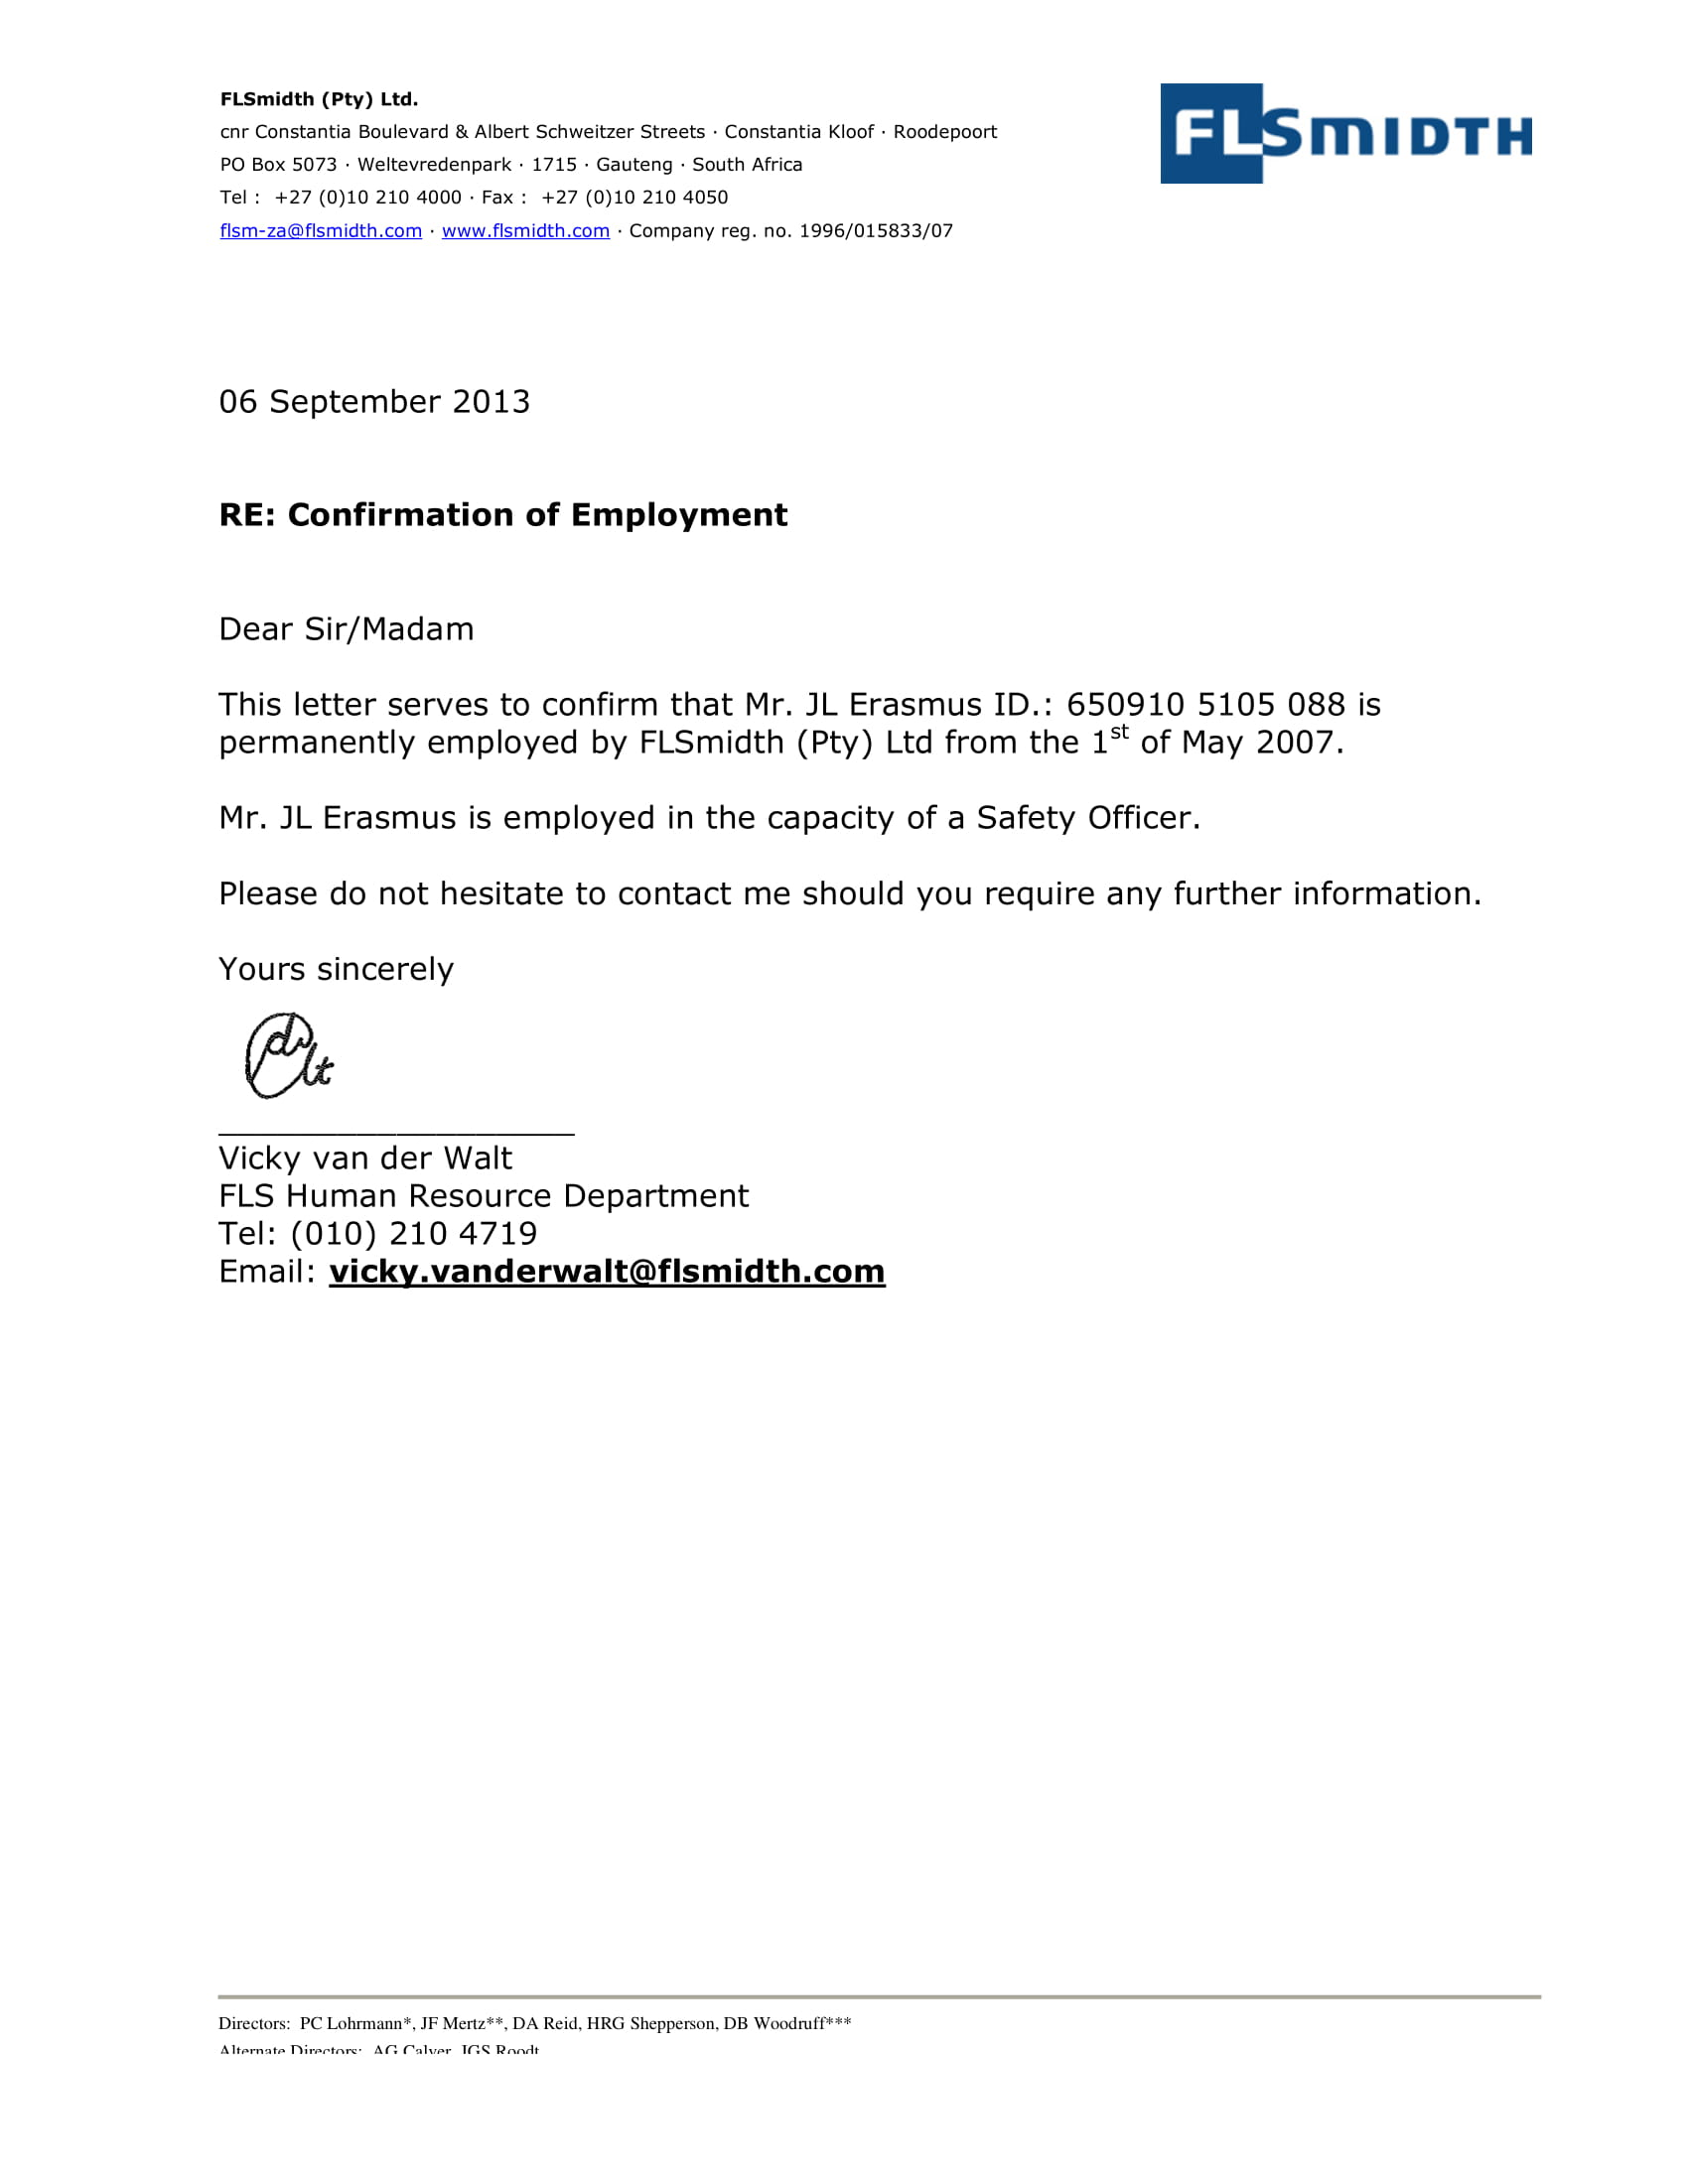 14 Employment Verification Letter Examples  PDF DOC  Examples